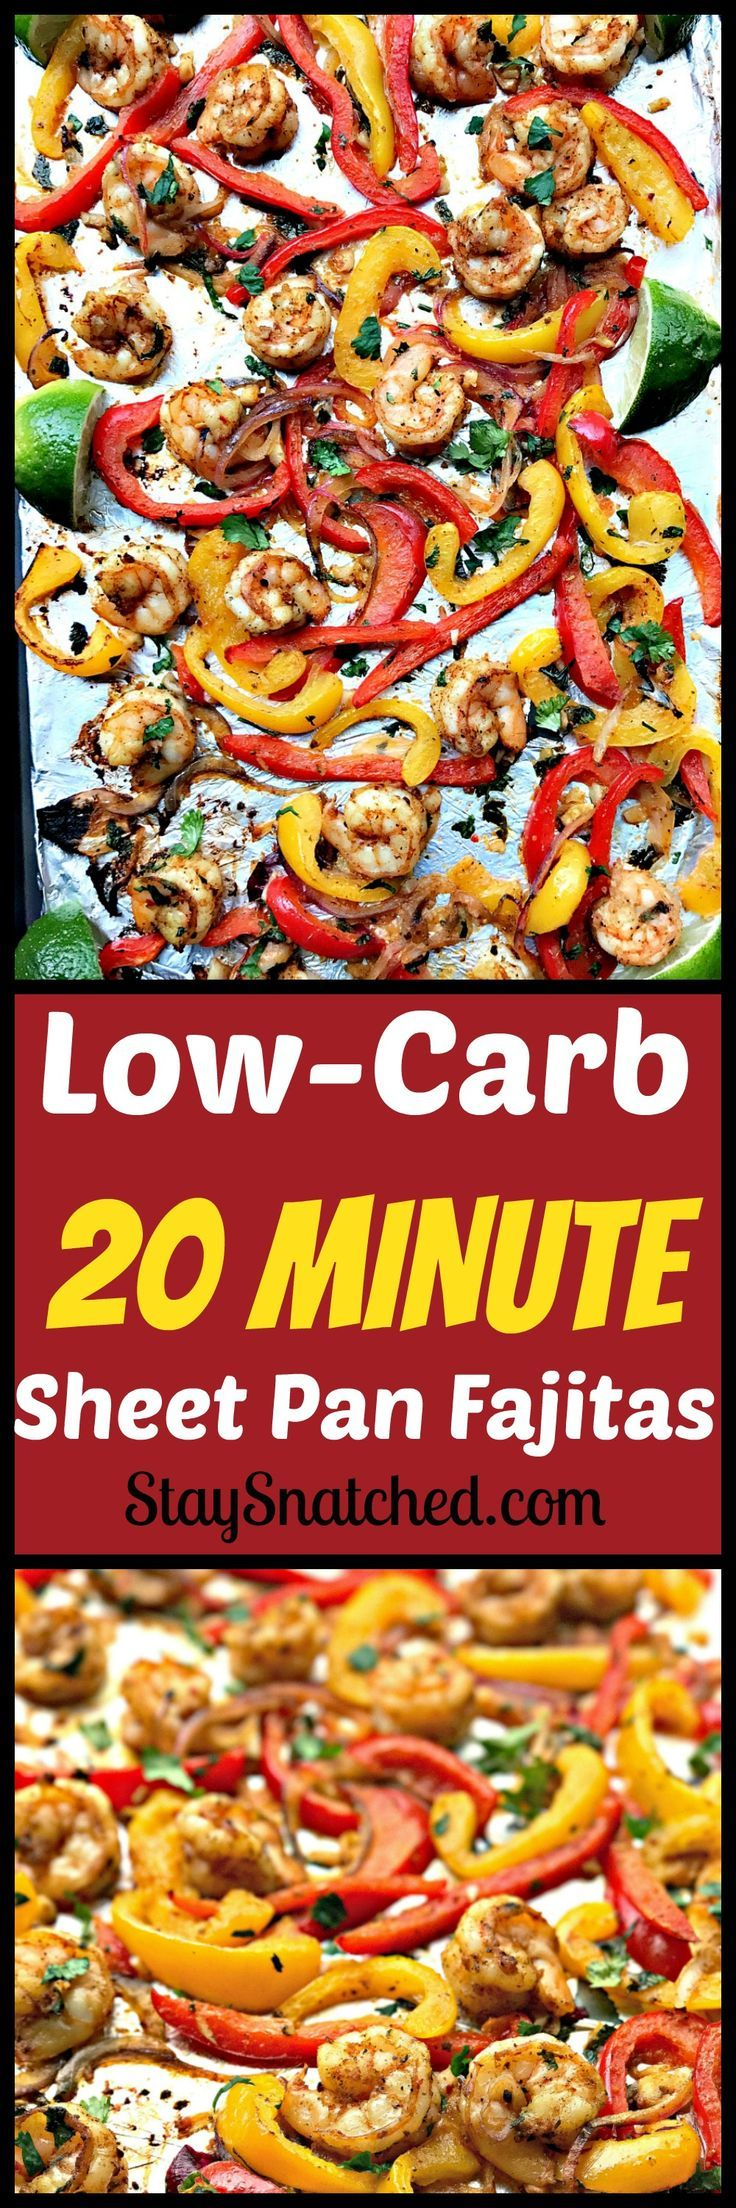 20-minute Low-Carb Dish: protein-packed broiled shrimp accompanied with broiled veggies #LowCarb #Paleo #Shrimp